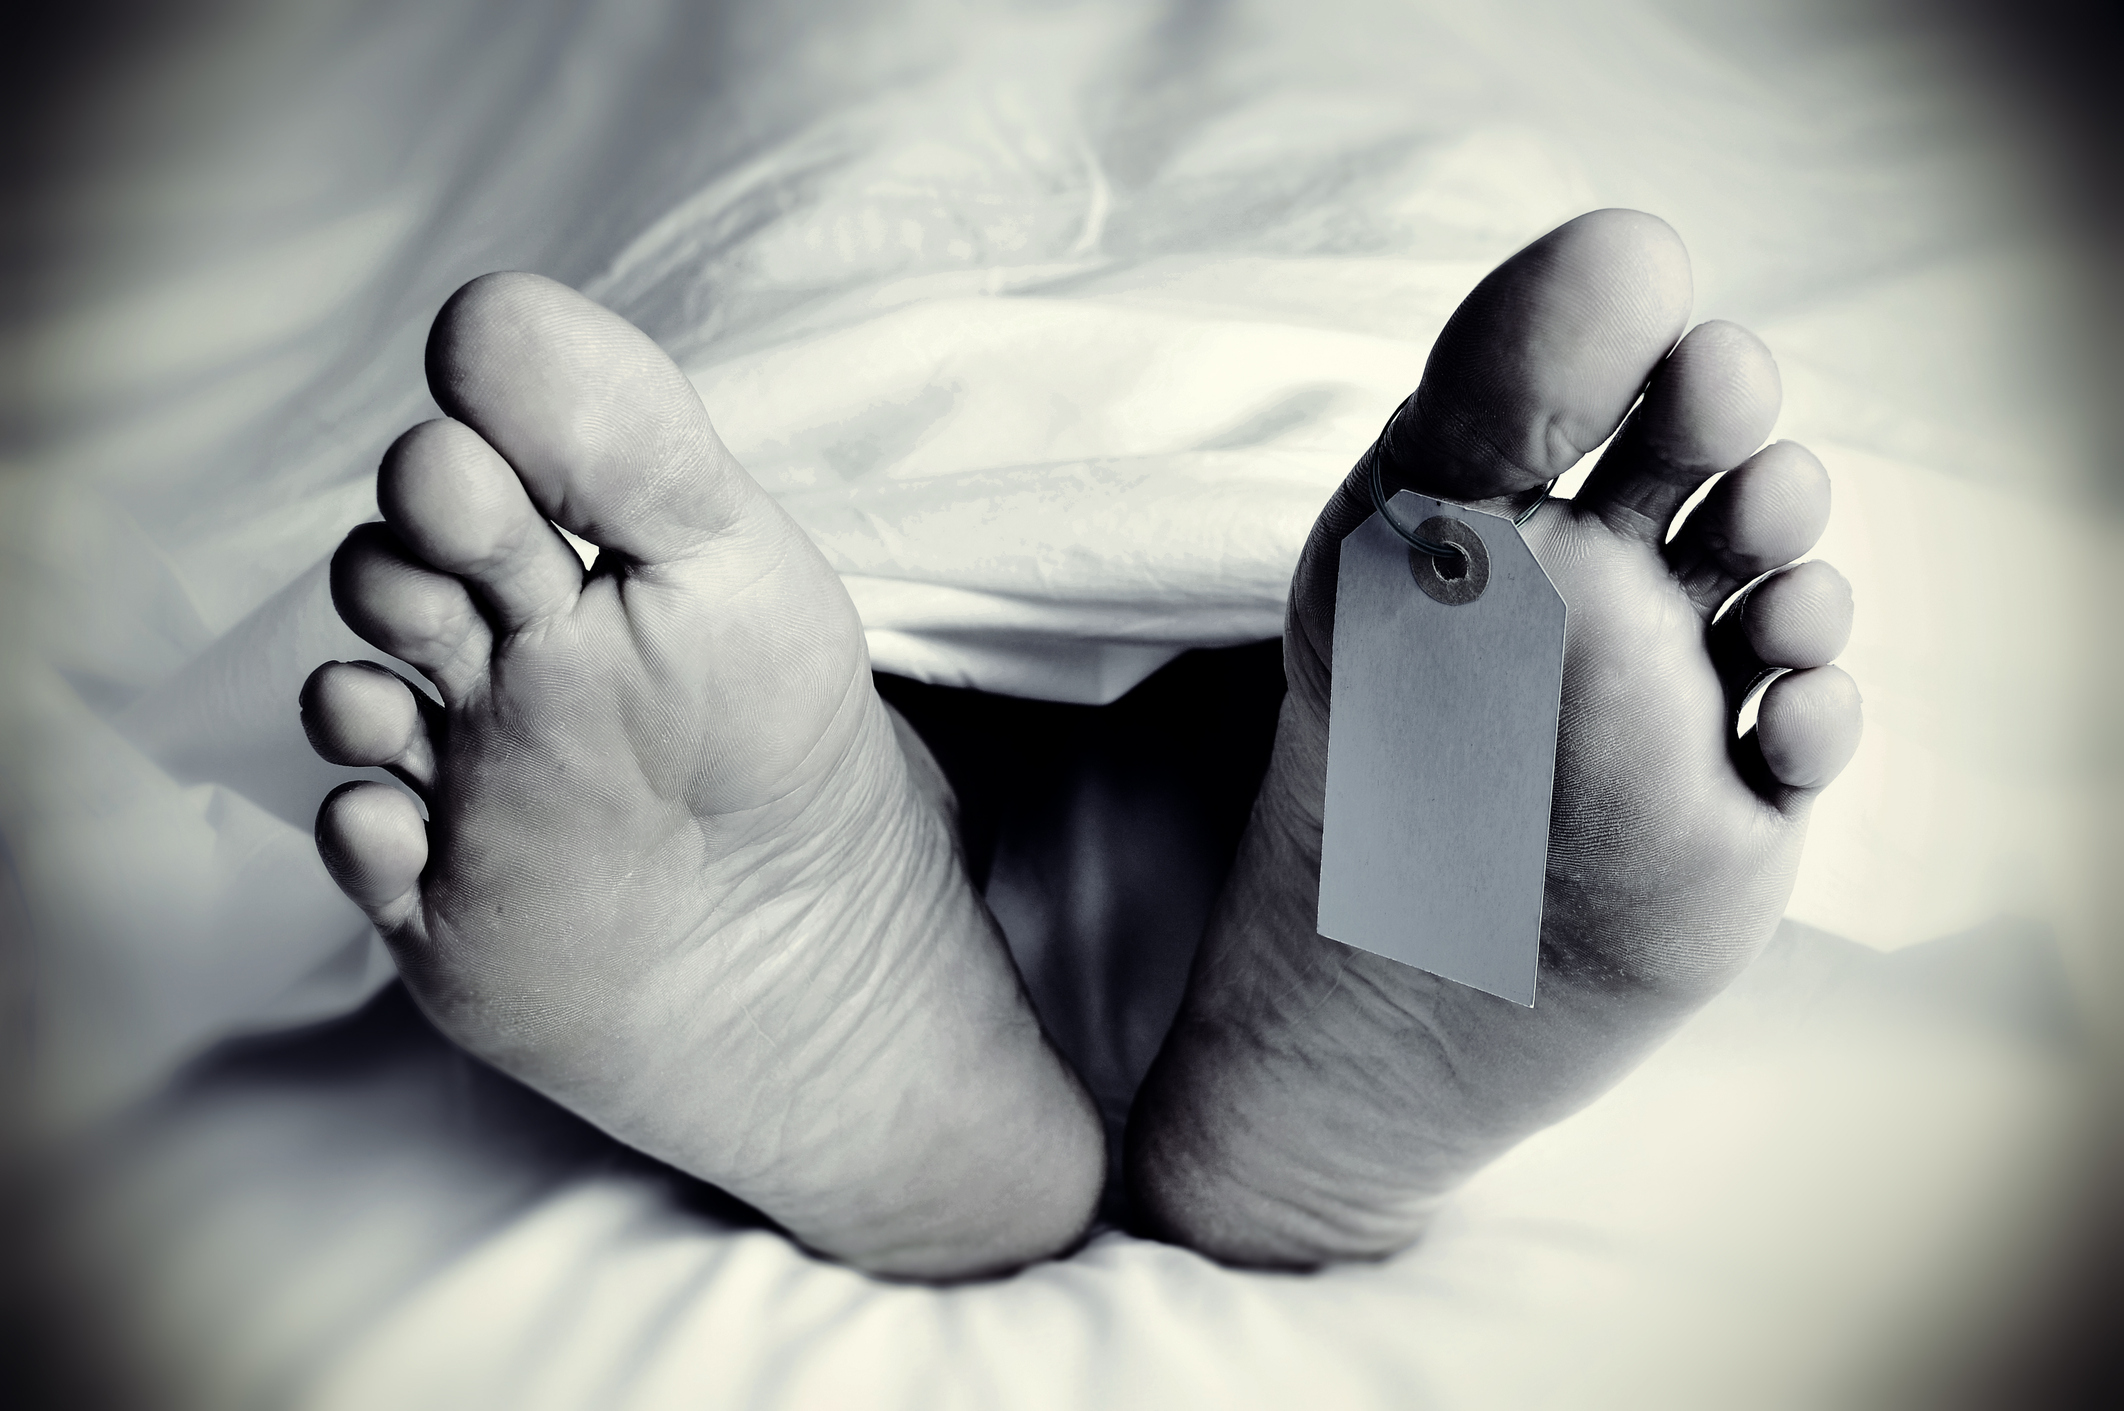 Two bodies were found in a pond in Dhanusha